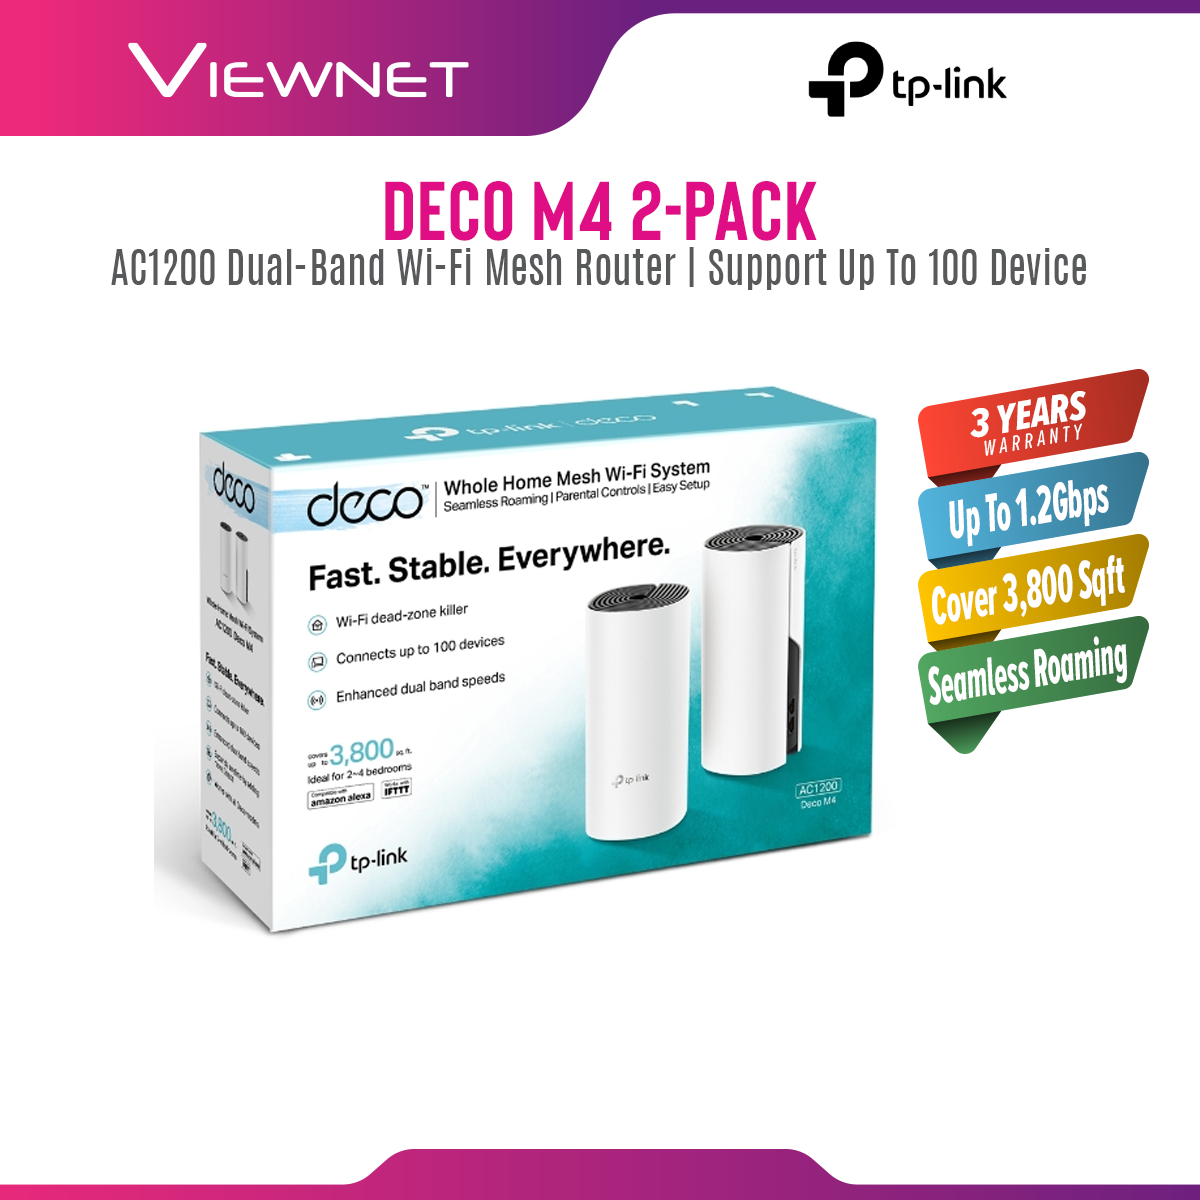 [Fast Shipment🚀] TP-Link Deco M4 (2-Pack) AC1200 Gigabit Whole Home Mesh WiFi Wireless Router Wi-Fi System